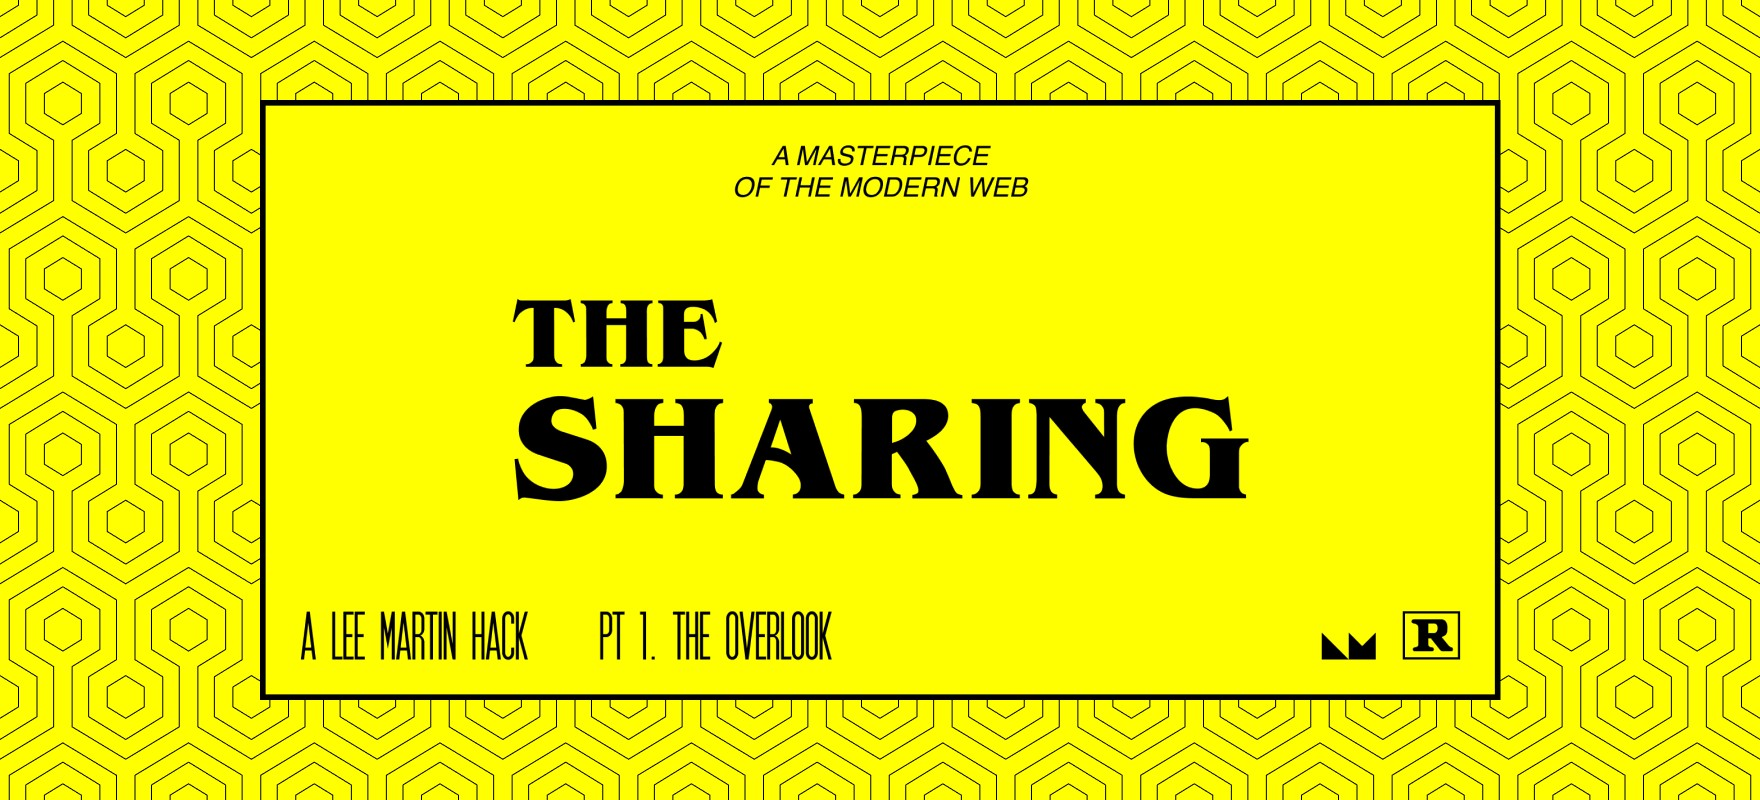 A banner introducing The Sharing post series.